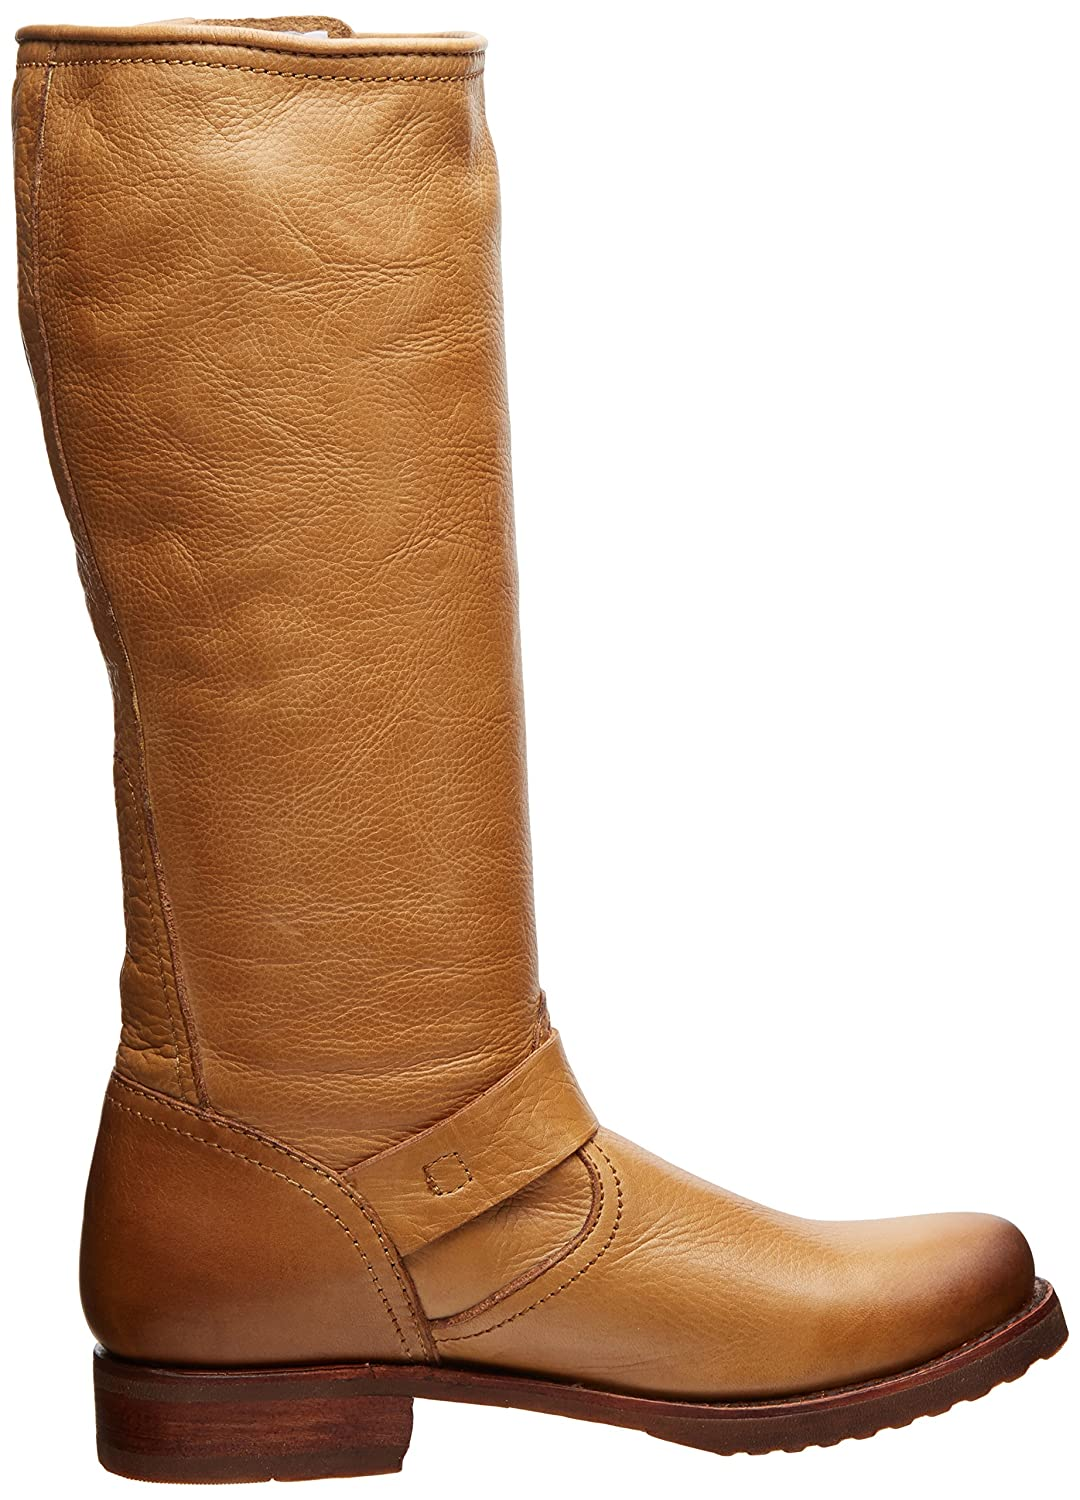 FRYE M Women's Veronica Slouch Boot B008BULLZY 10 M FRYE US|Camel Soft Vintage Leather-76602 a83e8e